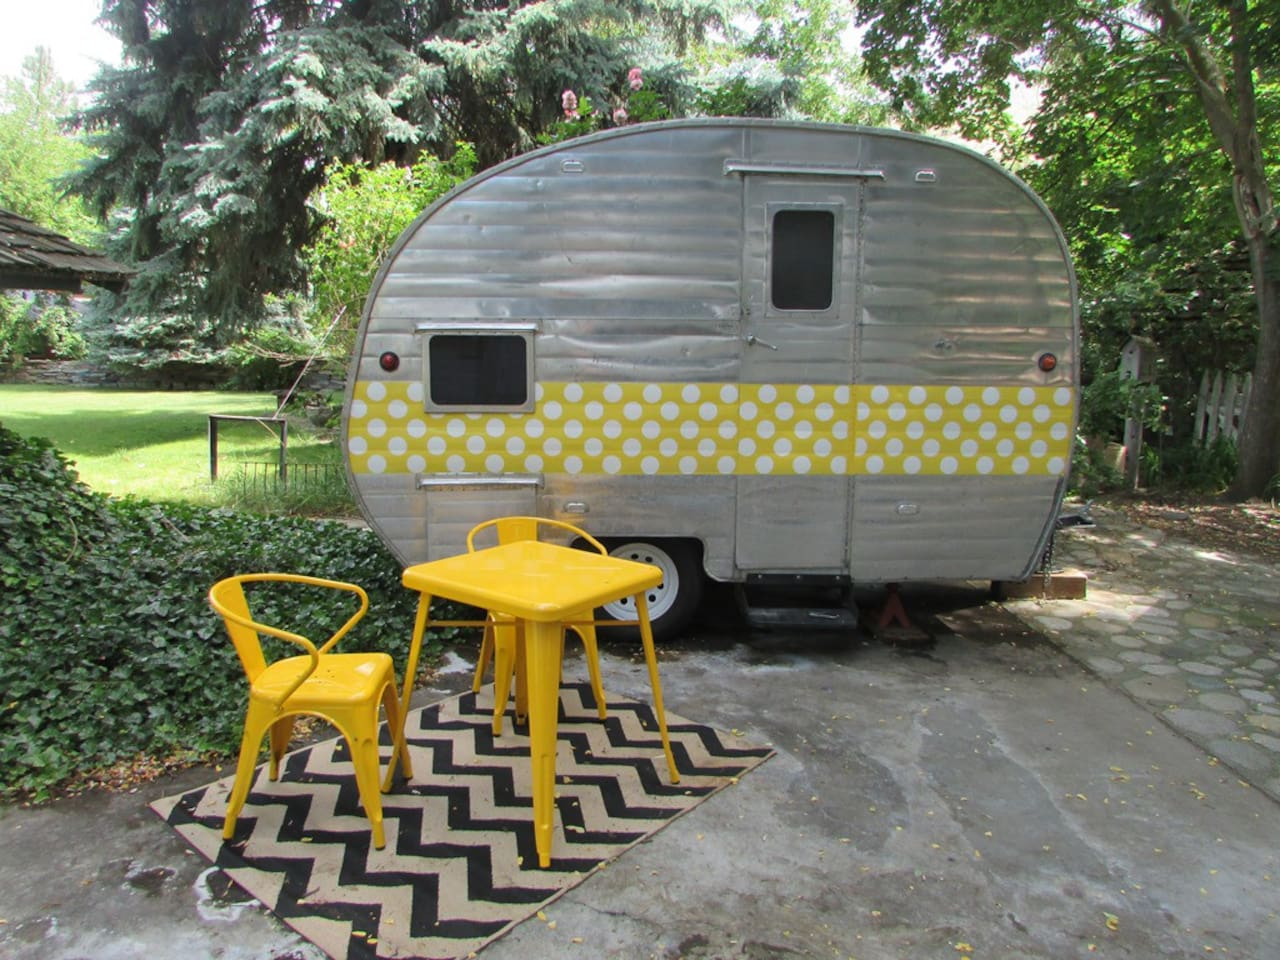 The Vintage Aloha 1956 Camper is located in Mavens' Haven's vintage trailer court.